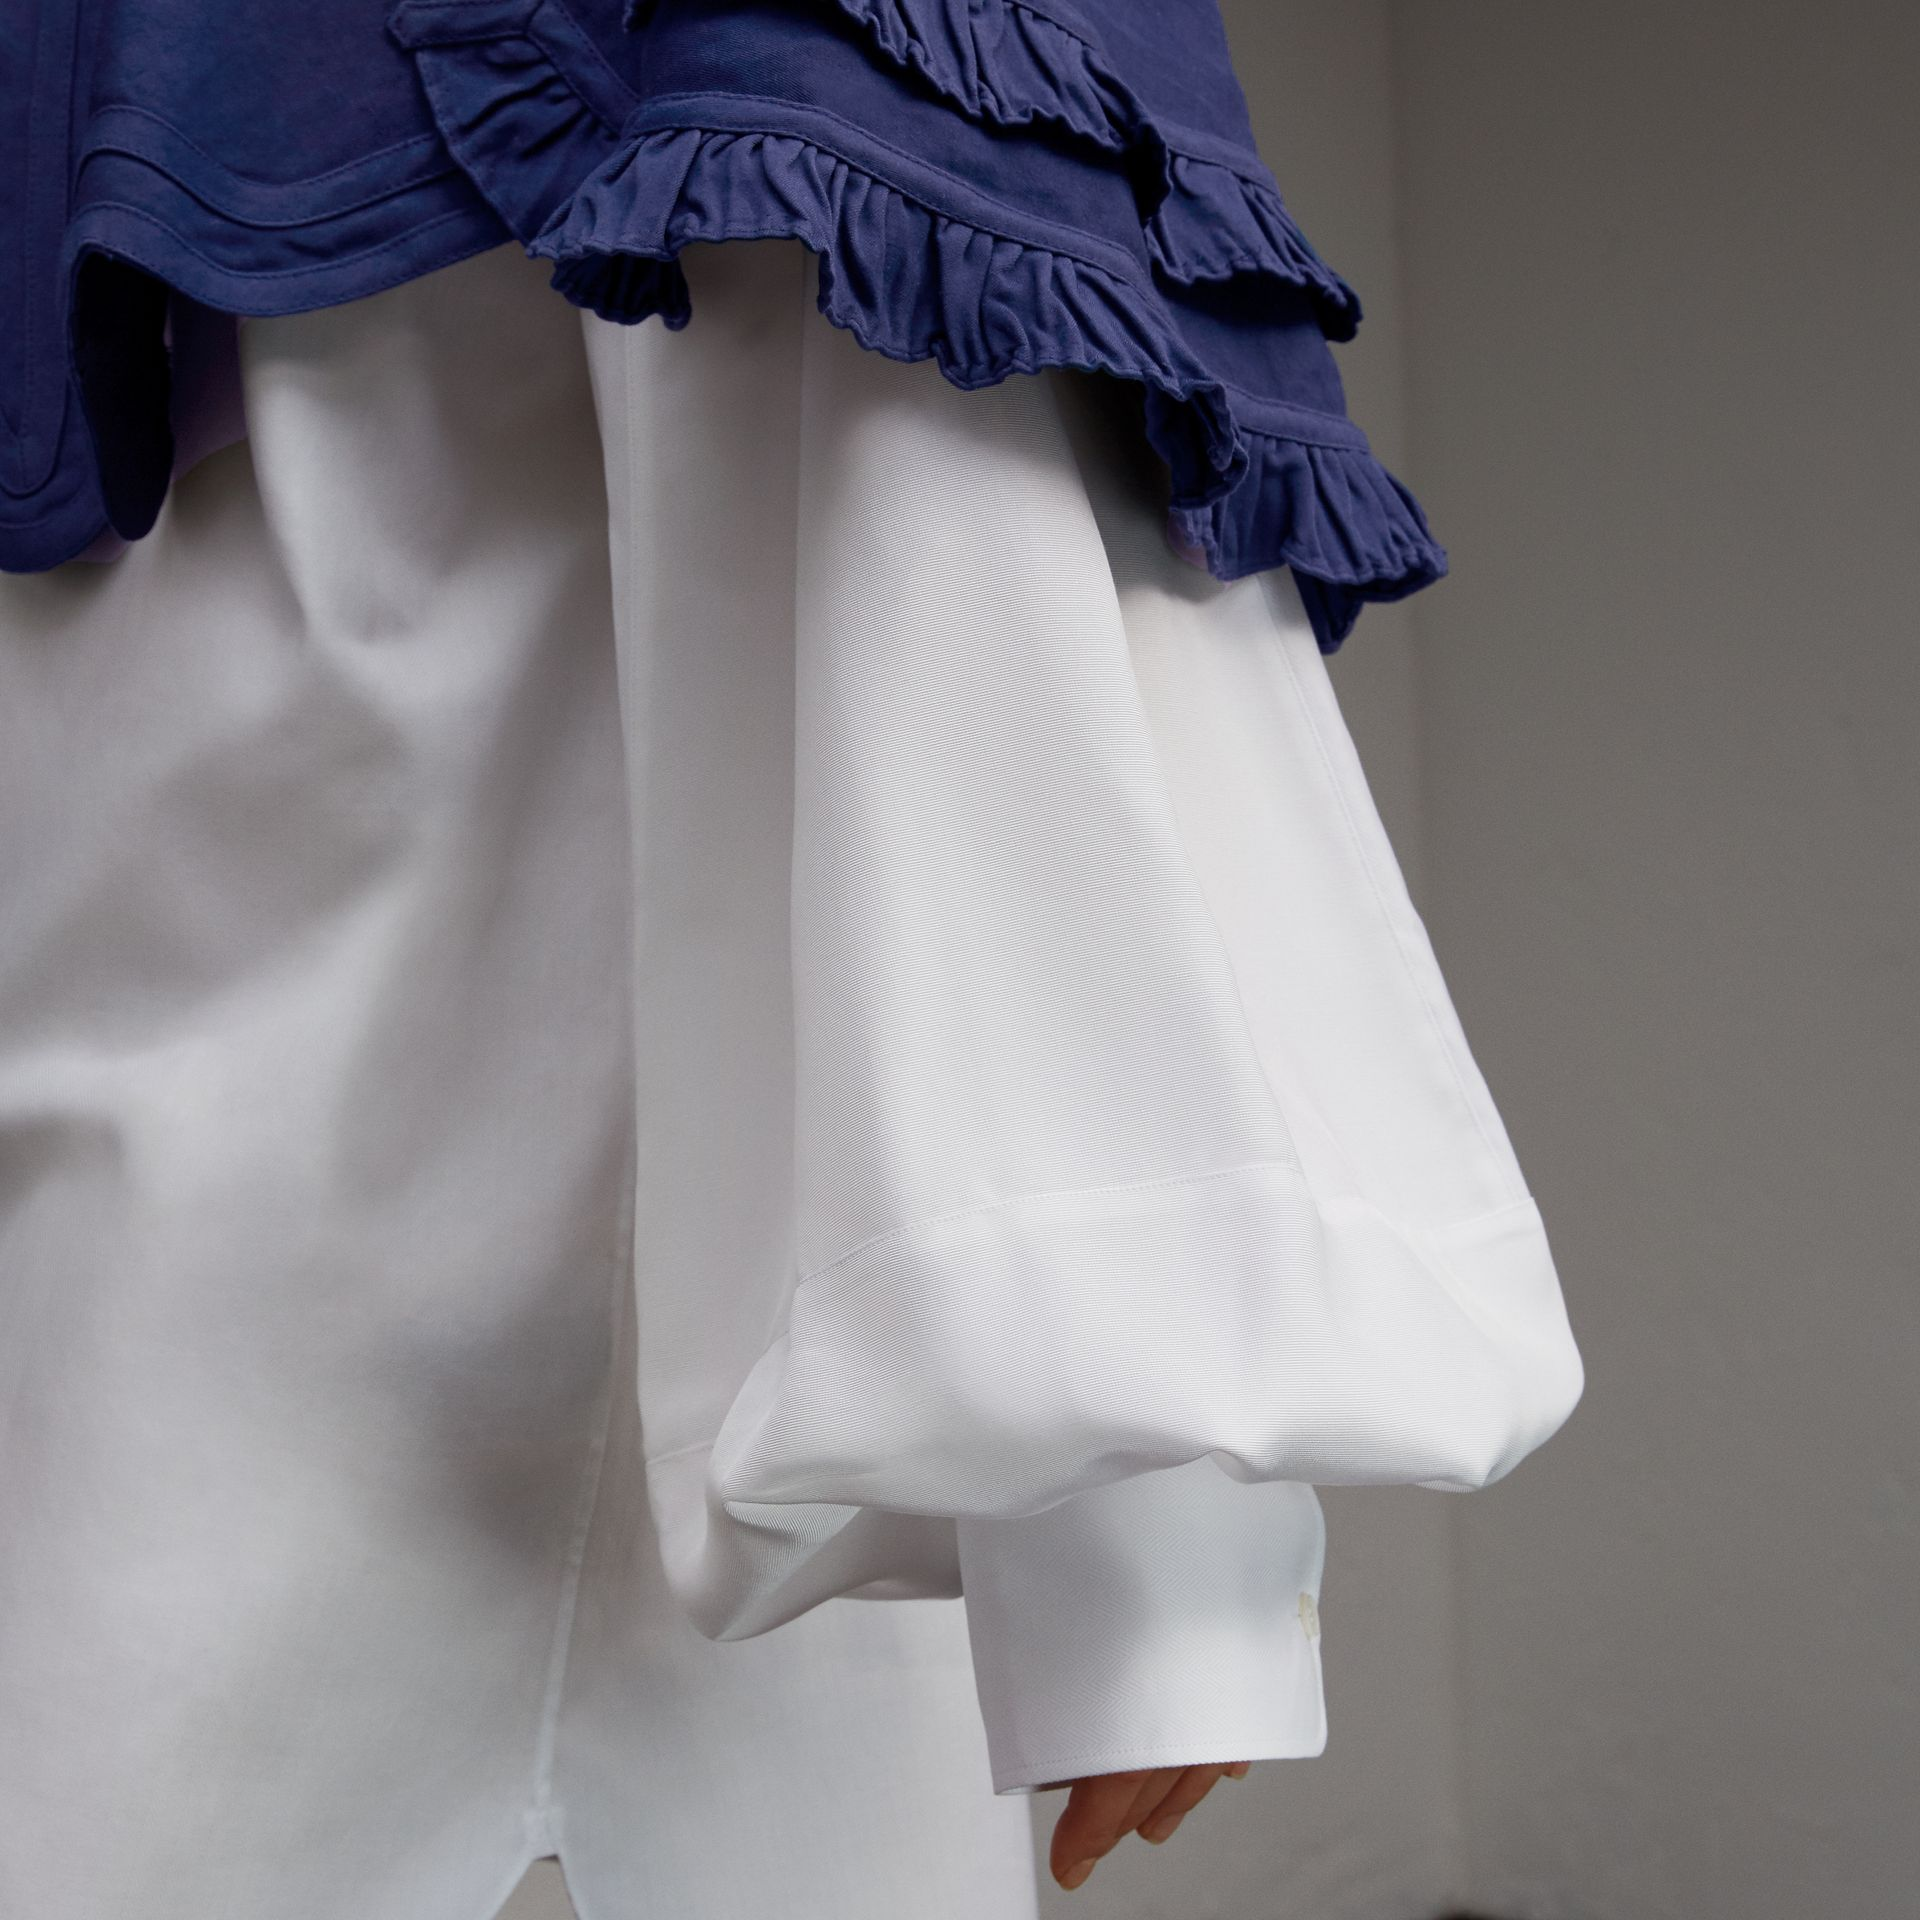 Ruffle Detail Ramie Cotton Capelet in Indigo - Women | Burberry - gallery image 5